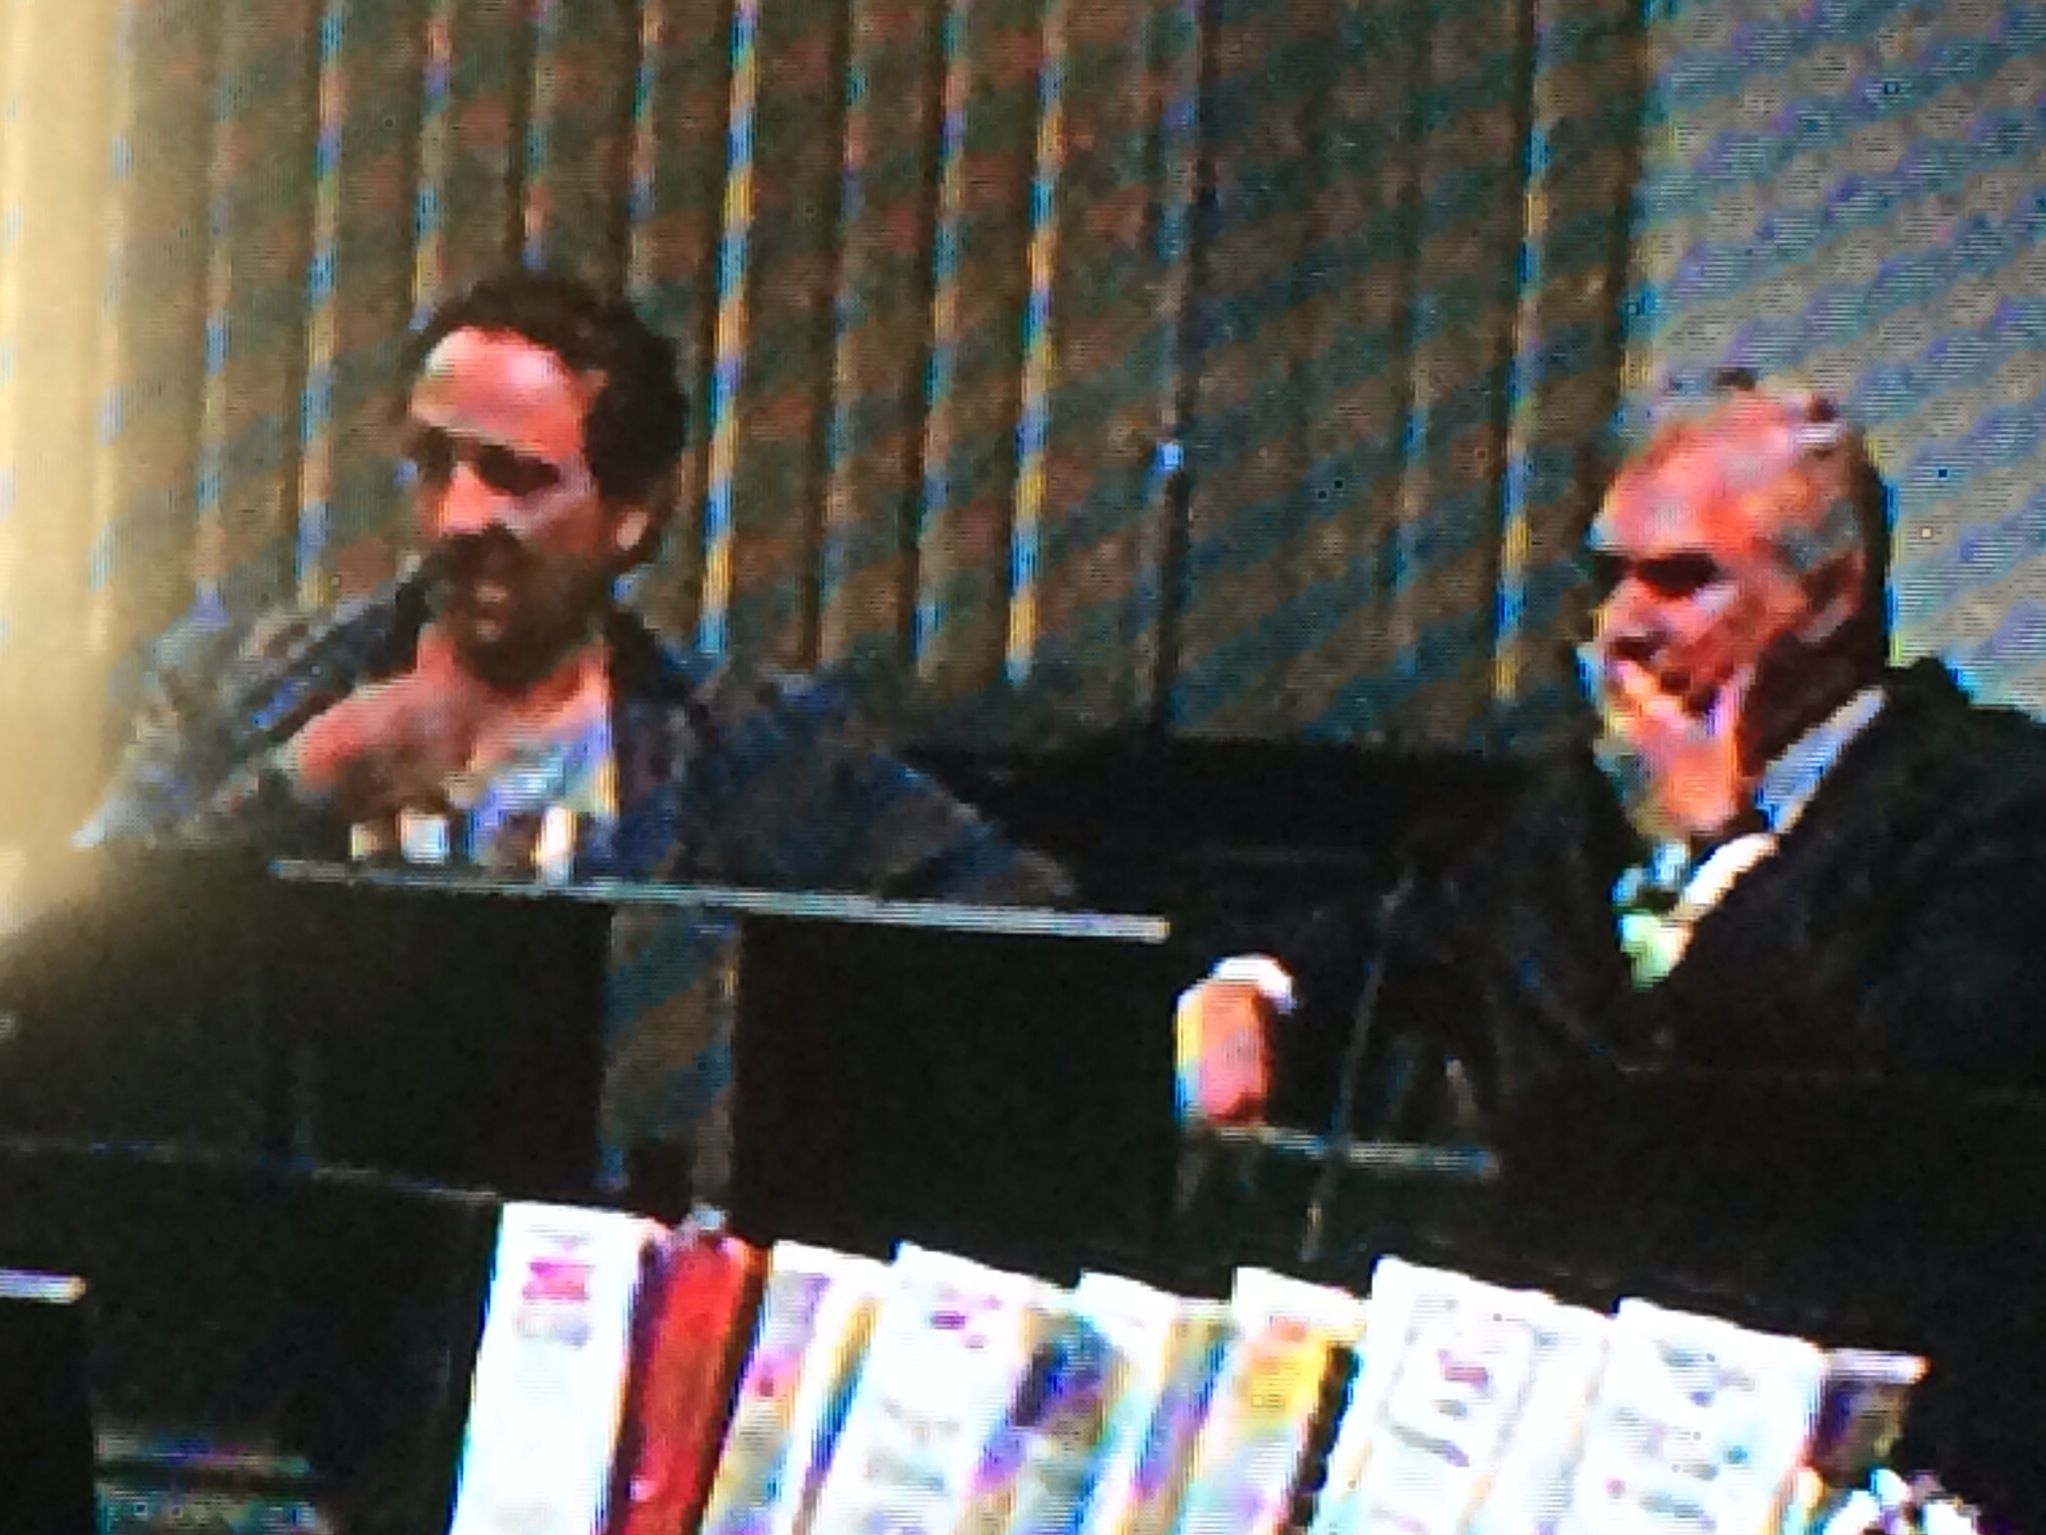 Bolano and Lawler watch on as Jackson testifies - Their faces tell the story